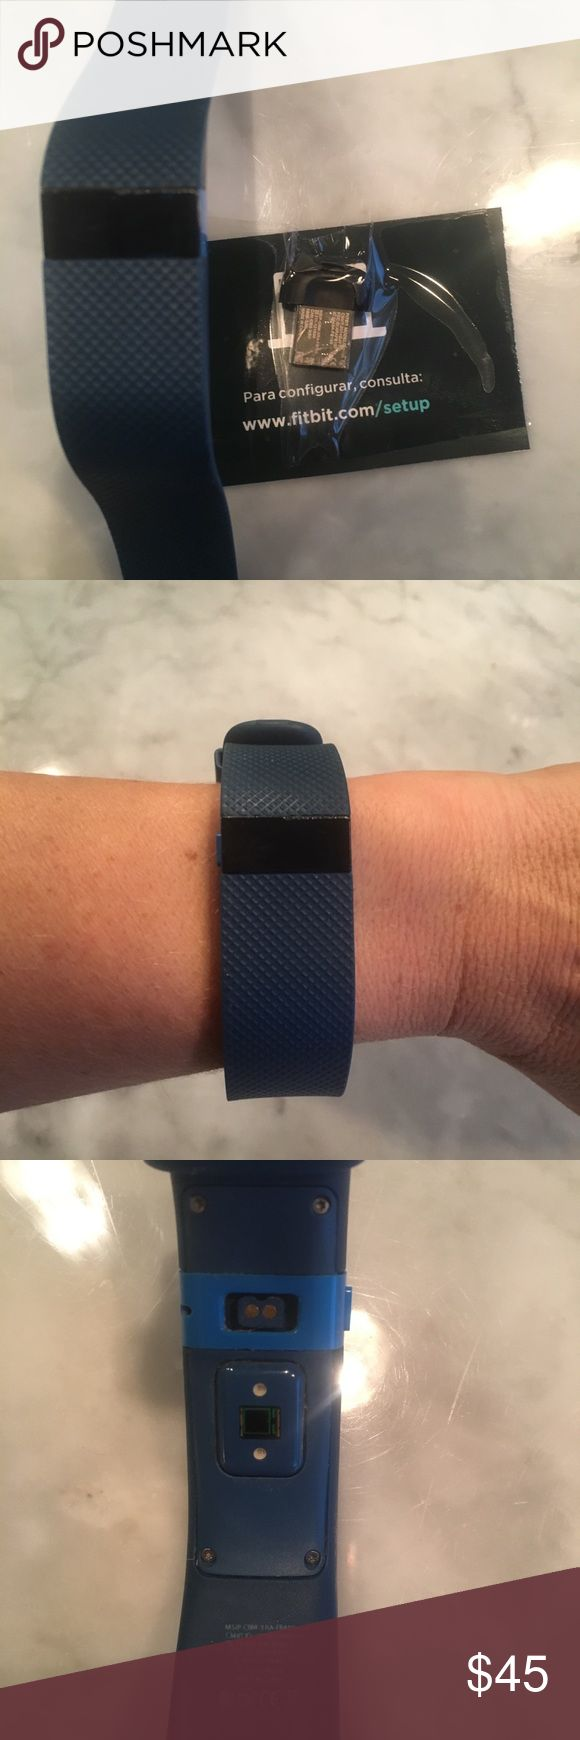 Fitbit Charge HR blue large Good condition-includes set up info. Tracks workout, heart rate, and sleep. fitbit Accessories Watches